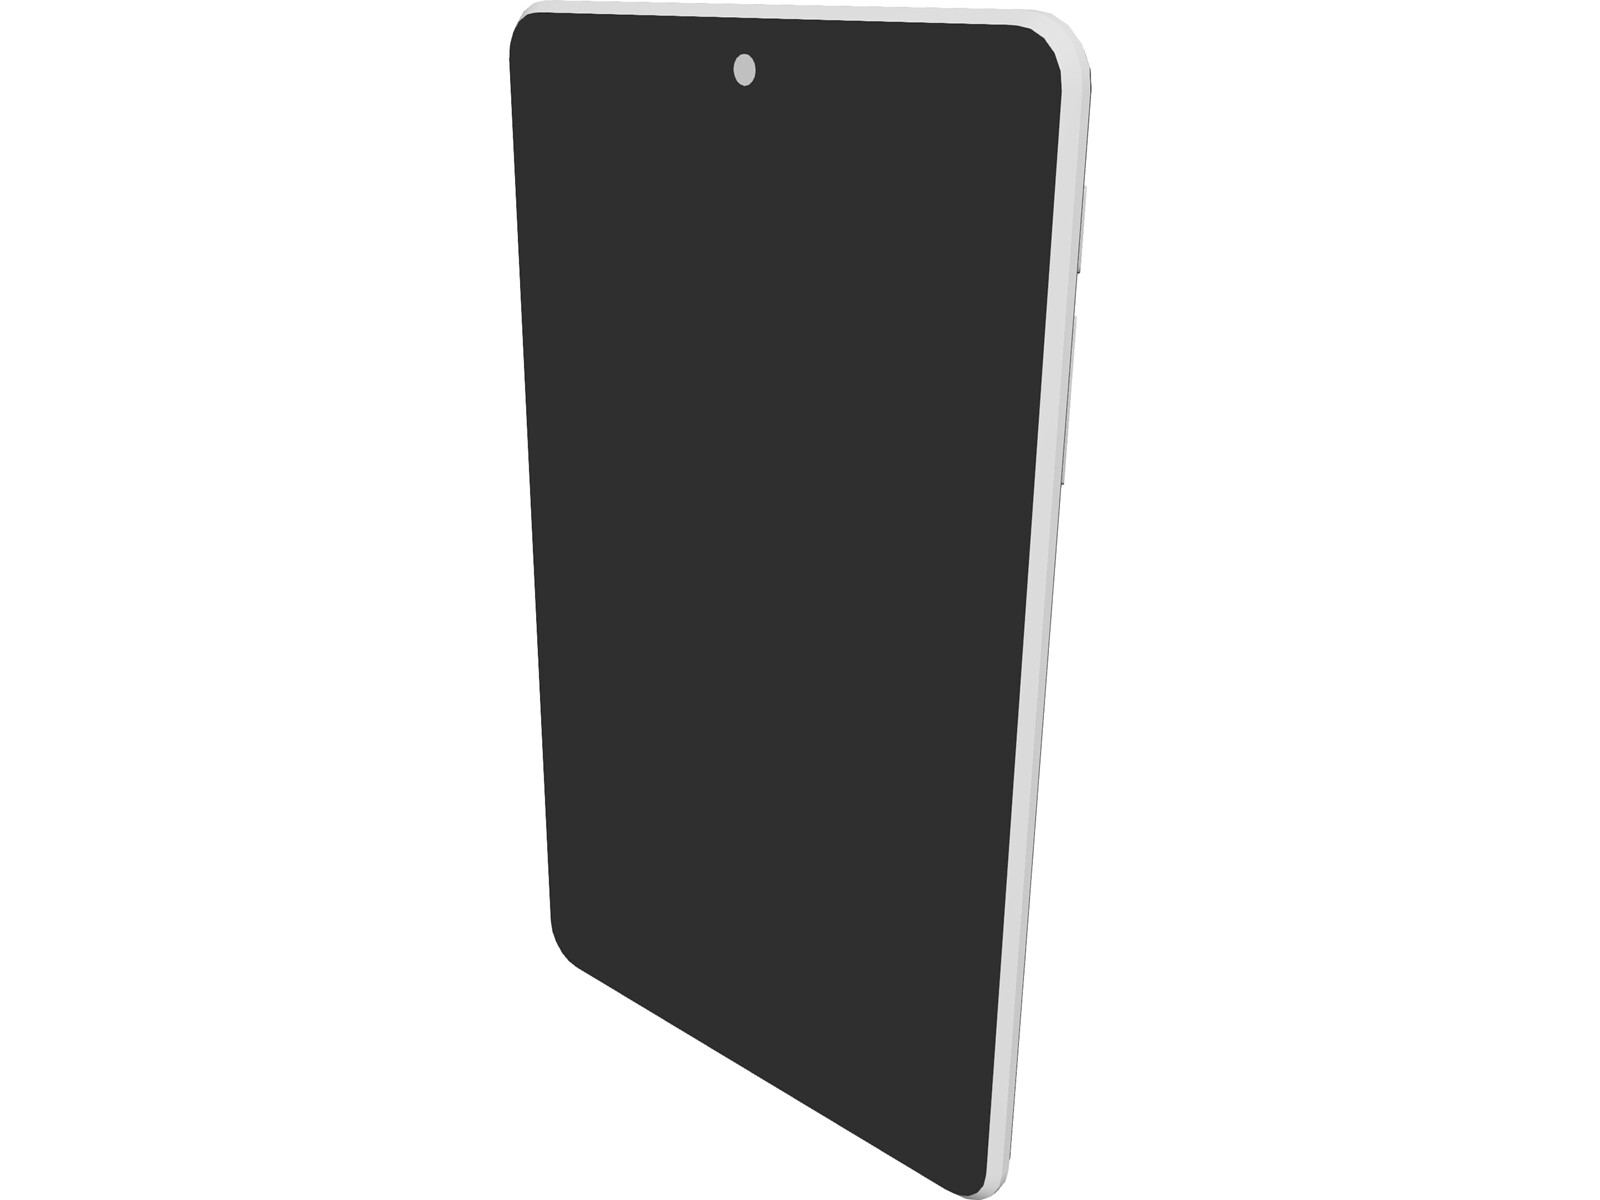 Galaxy Nexus 7 Tablet 3D CAD Model